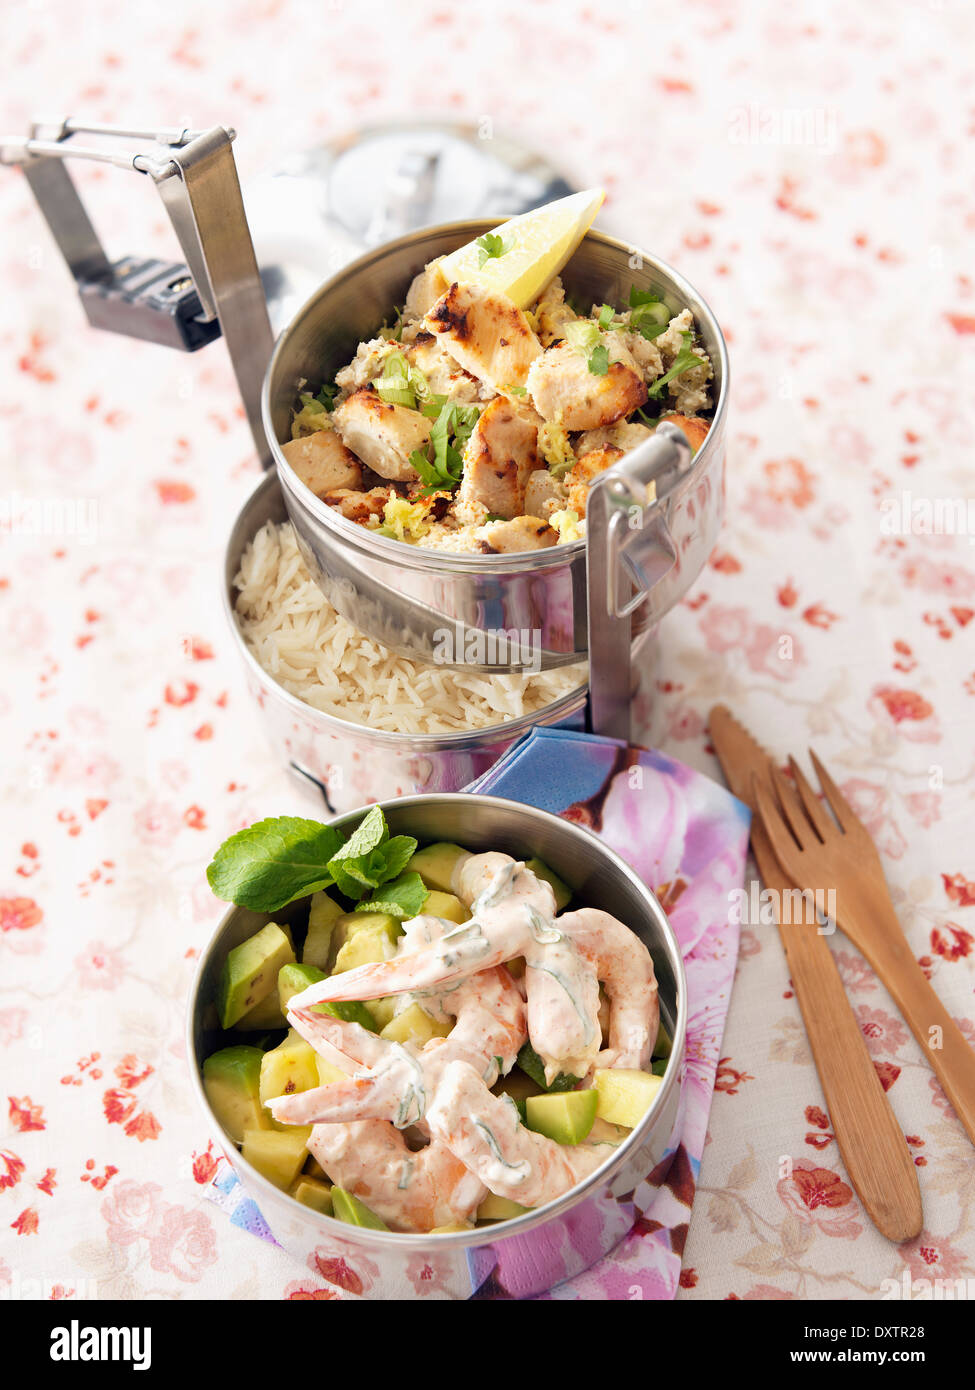 Shrimps marinated in yoghurt with avocado, grilled chicken with basmati rice - Stock Image